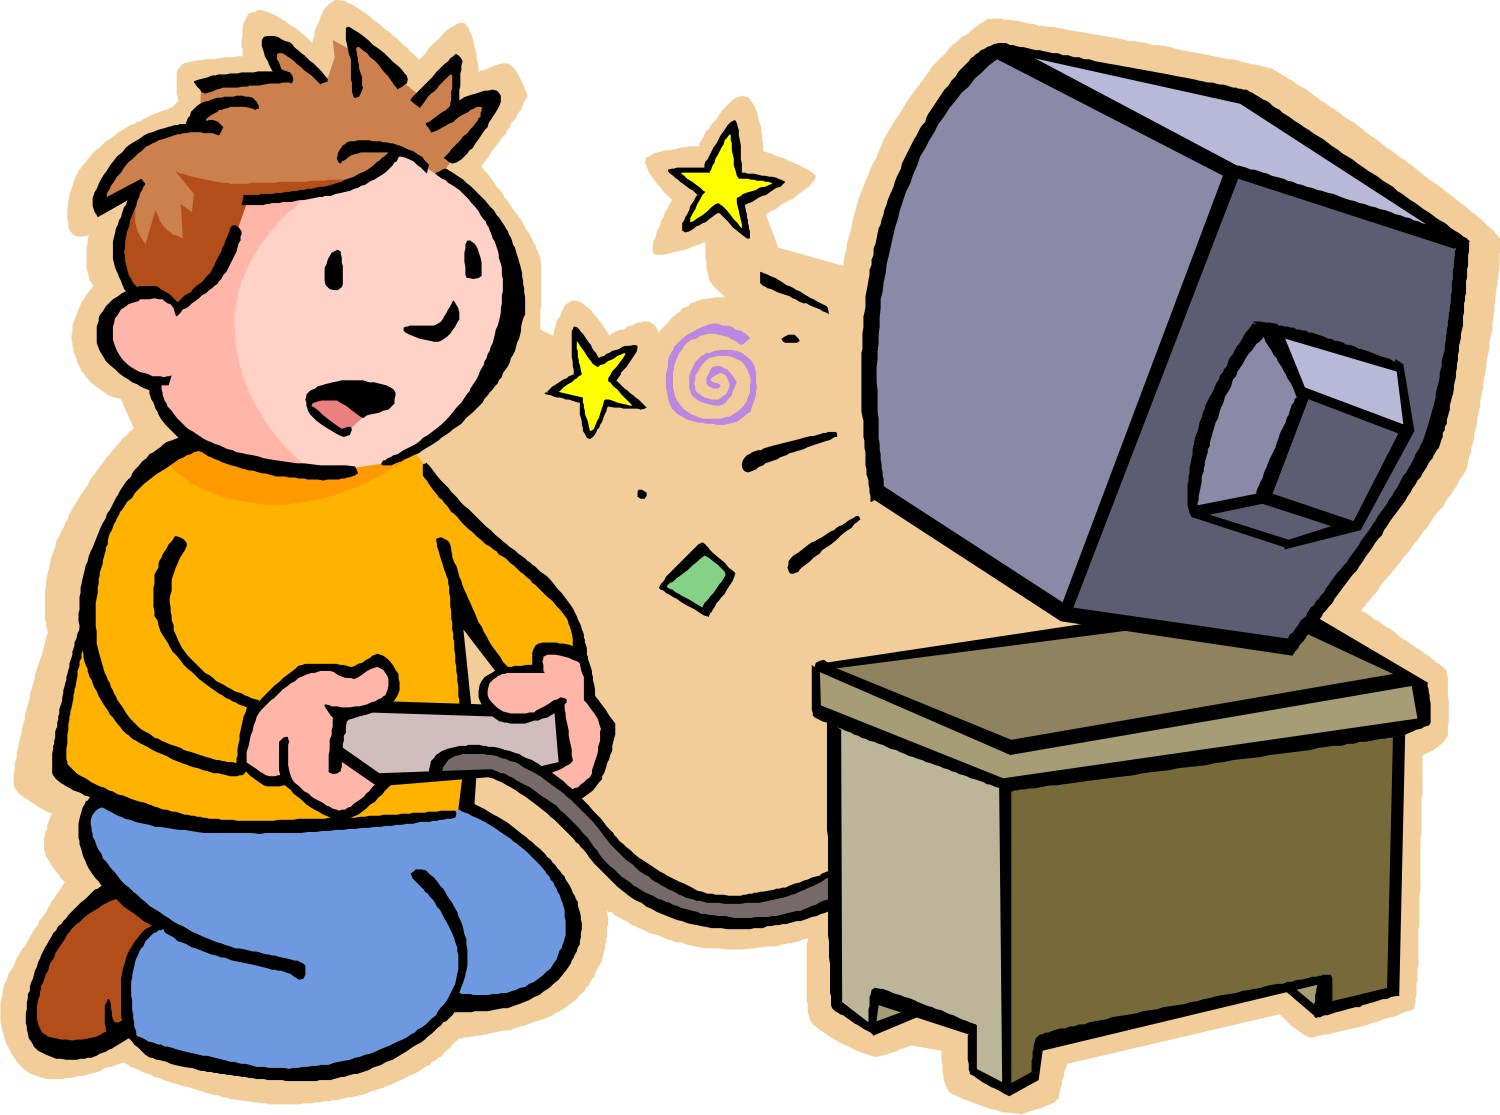 Gaming clipart #3, Download drawings